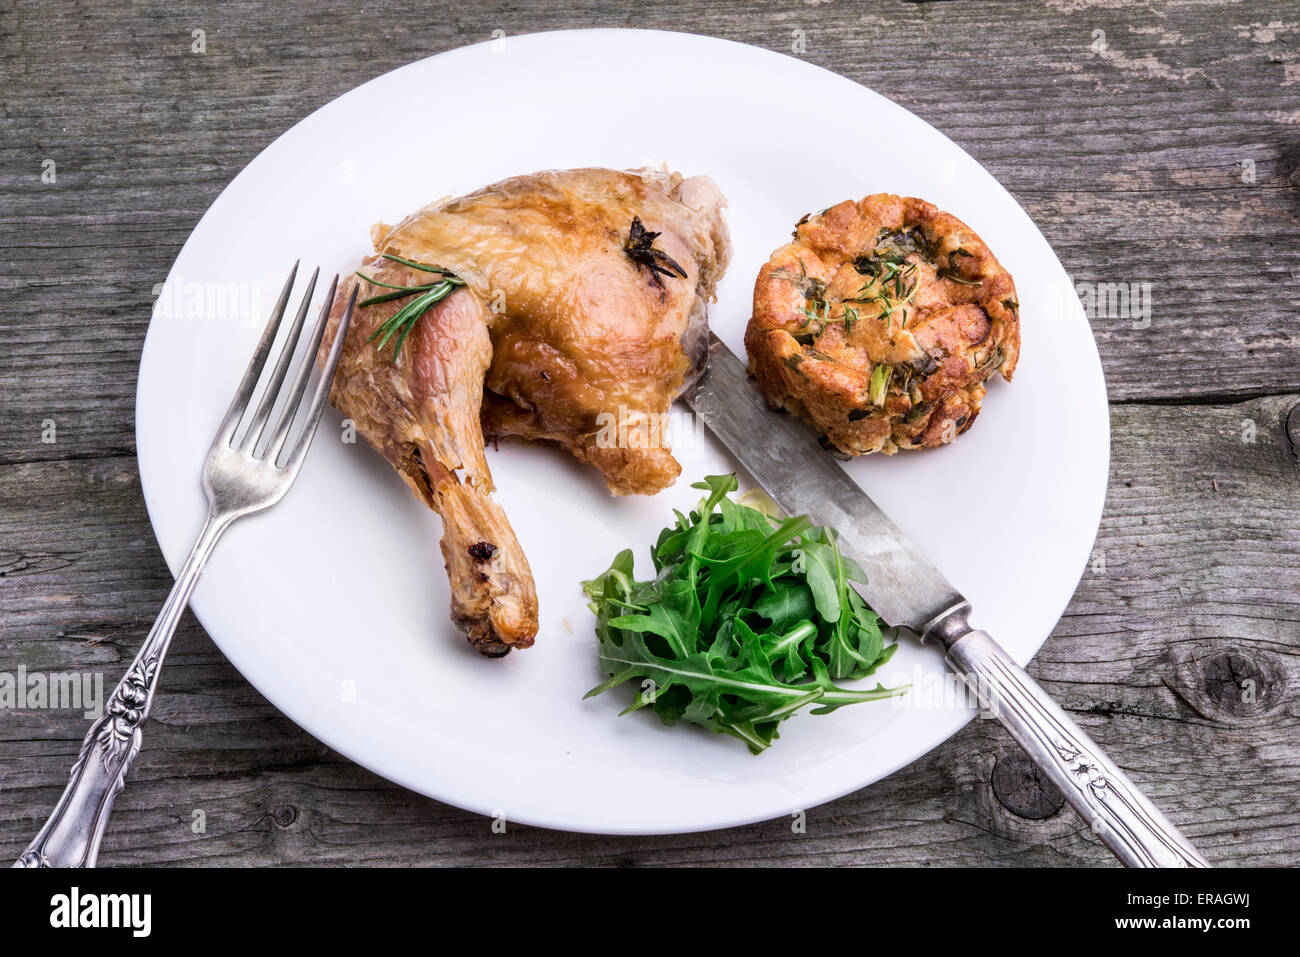 Roast chicken leg with rosemary and herb stuffing served with arugula salad and fresh herbs. - Stock Image